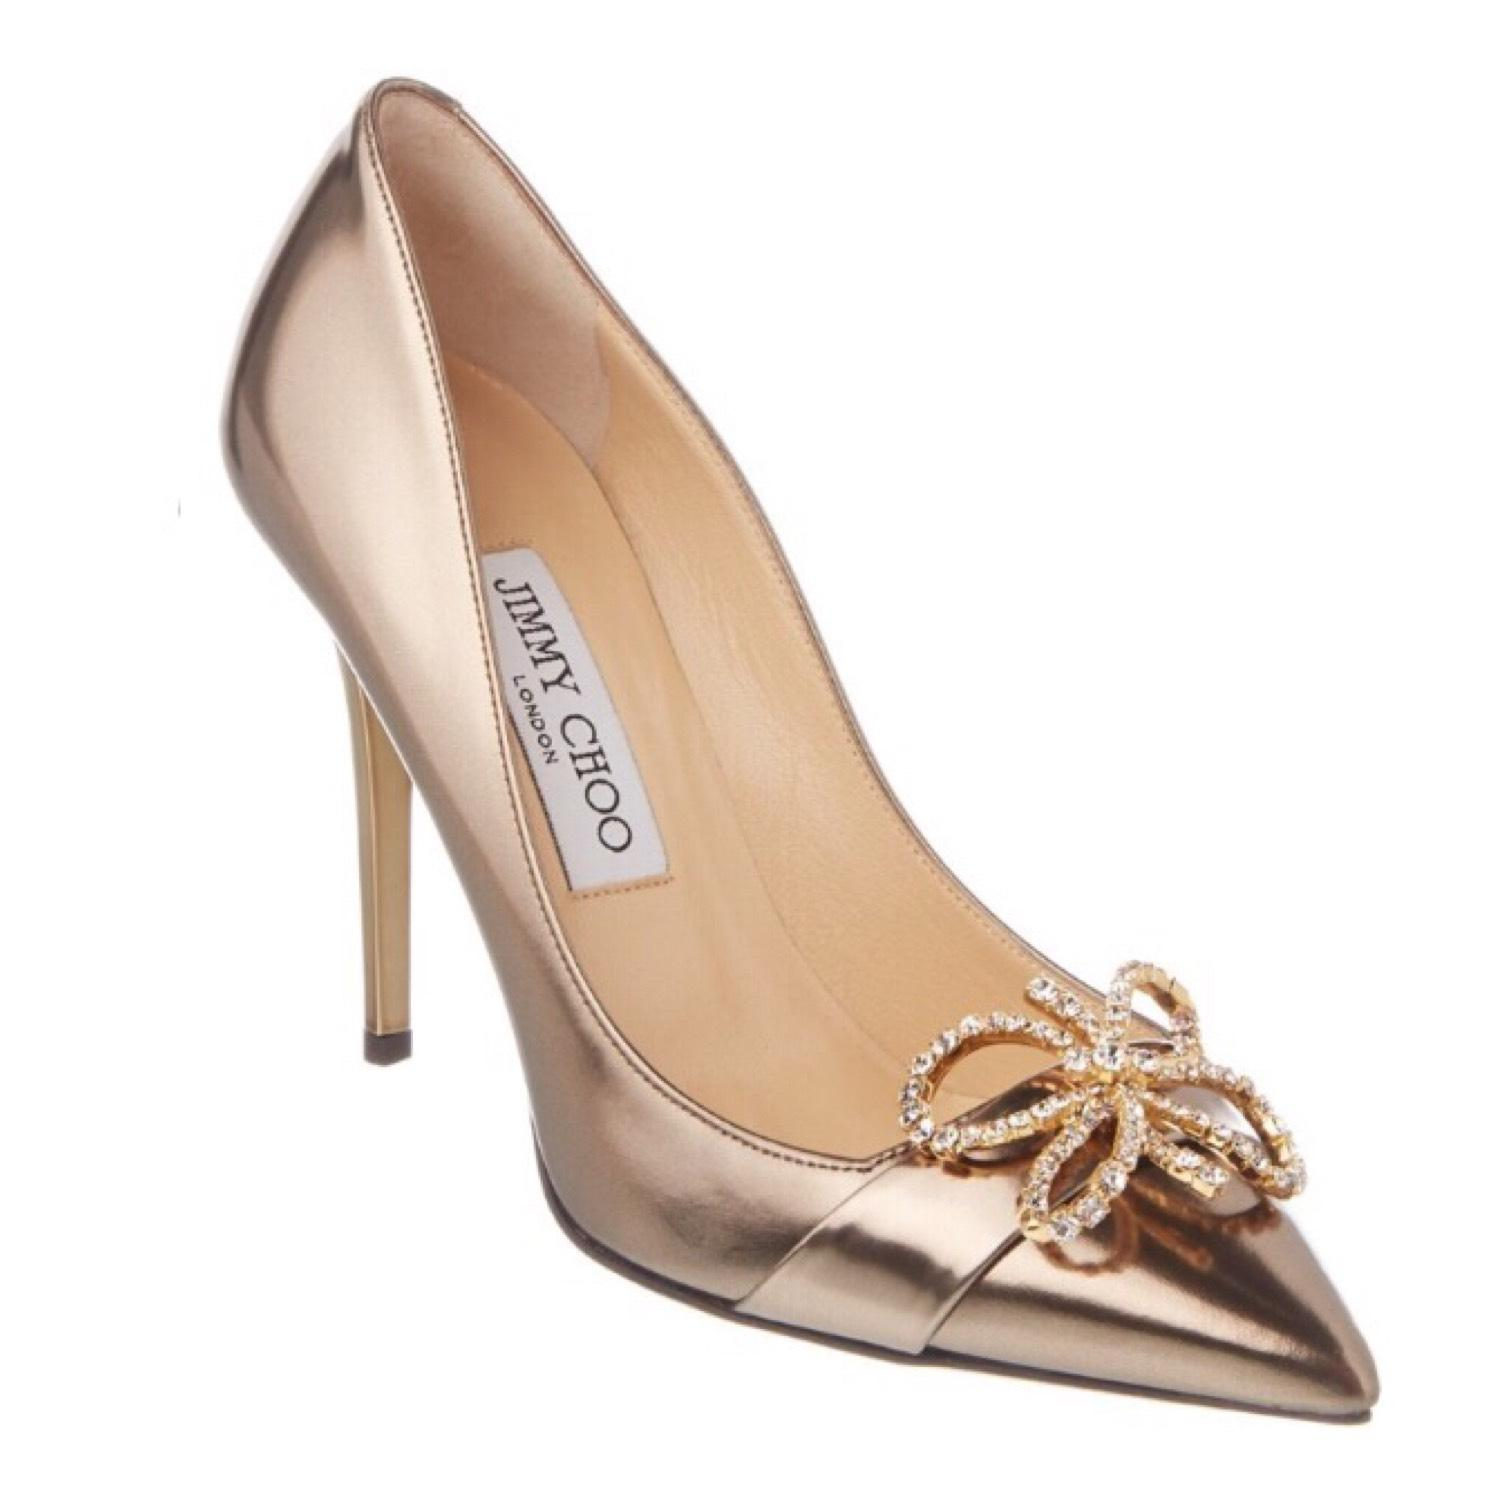 9067963923c Jimmy Choo Gold Gold Gold Crystal Buckle Embellished Pumps Size US 9  Regular (M